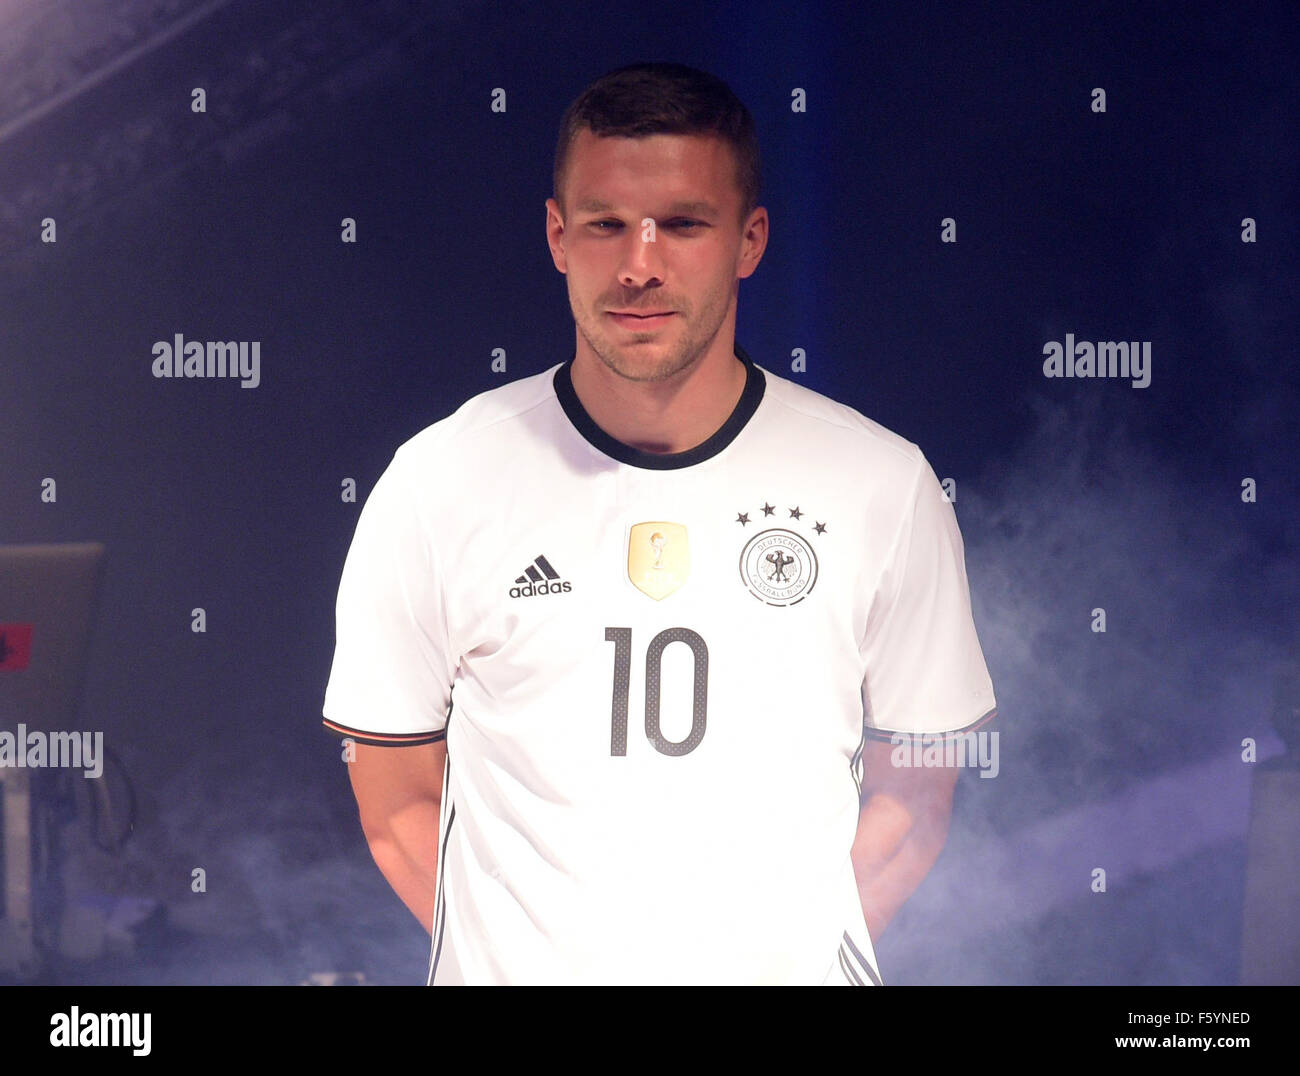 750e9ae0f9a German national soccer players Lukas Podolski (C) poses during the  presentation of the German national soccer team kit for the UEFA Euro 2016  provided by ...